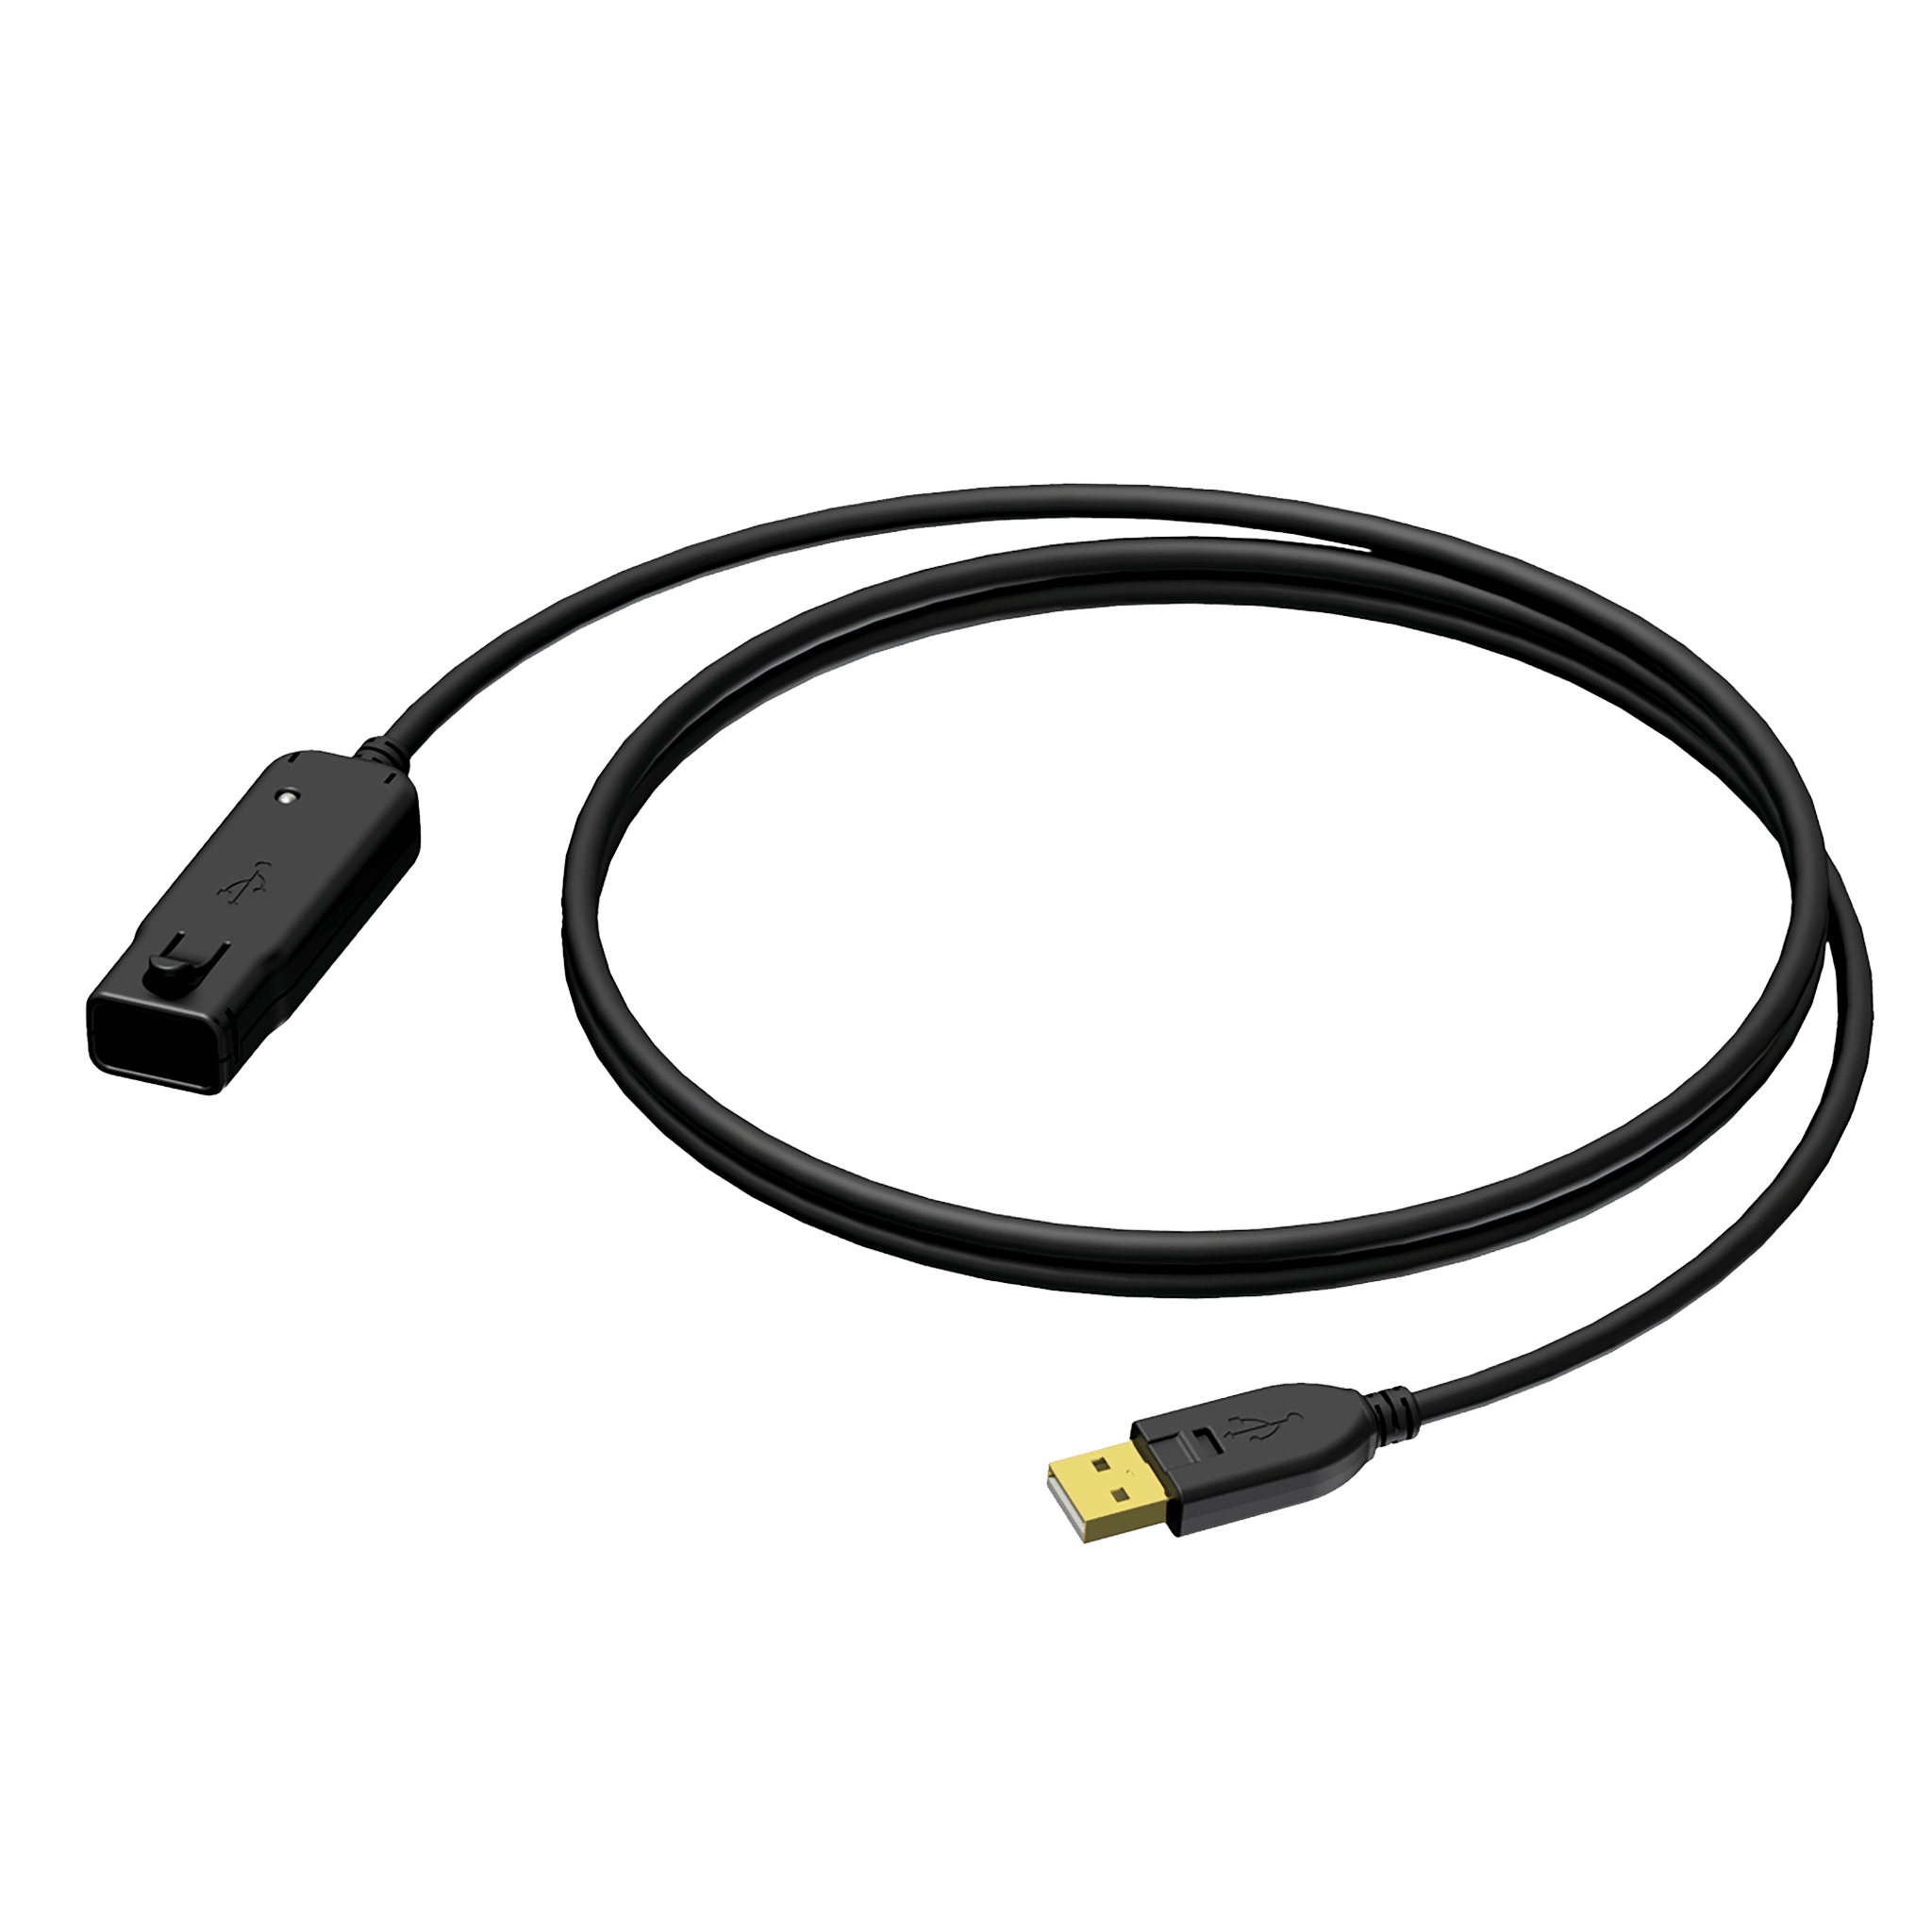 BXD602 - USB A male - USB A female - active repeater cable